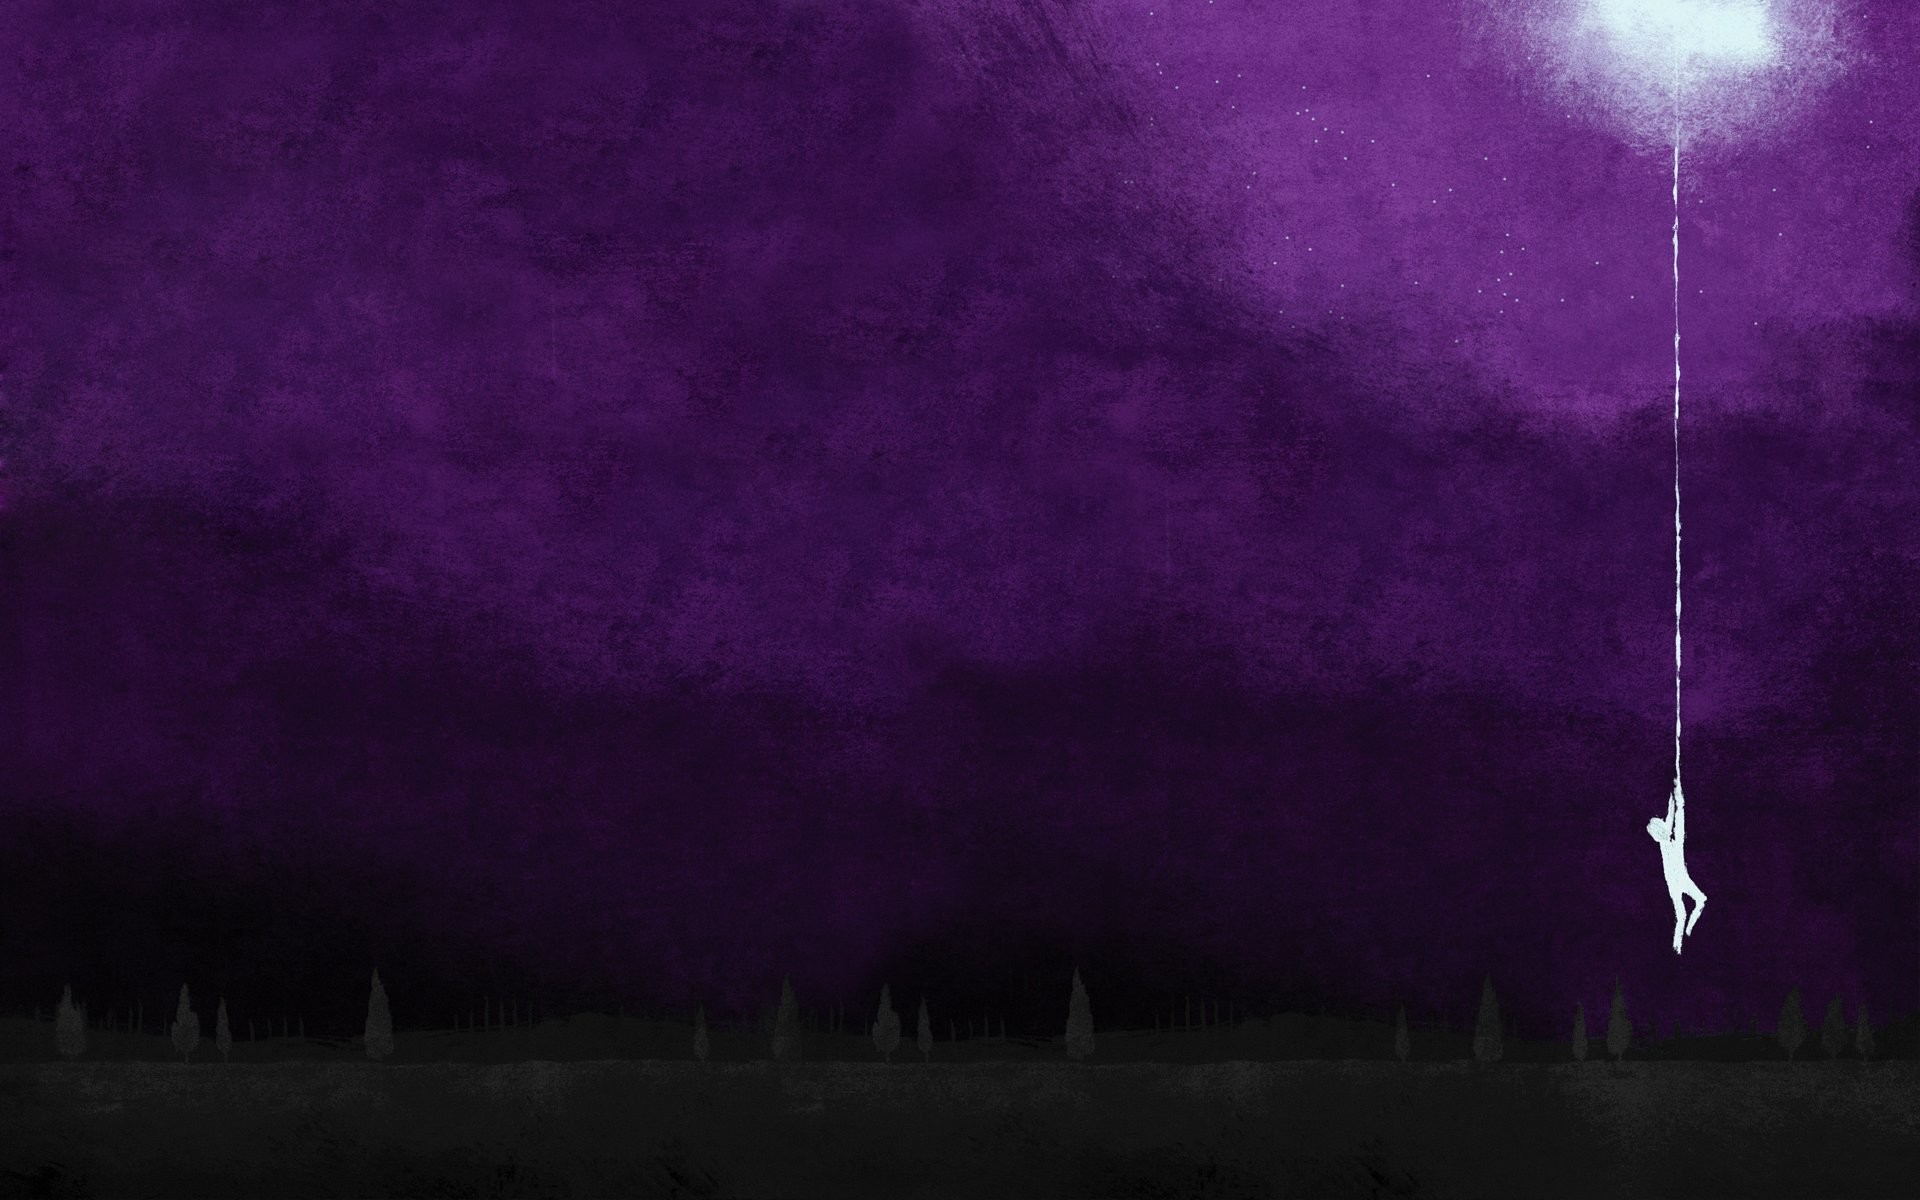 1920x1200 Moon silhouettes hanging artwork album covers purple background August  Burns Red wallpaper |  | 257852 | WallpaperUP